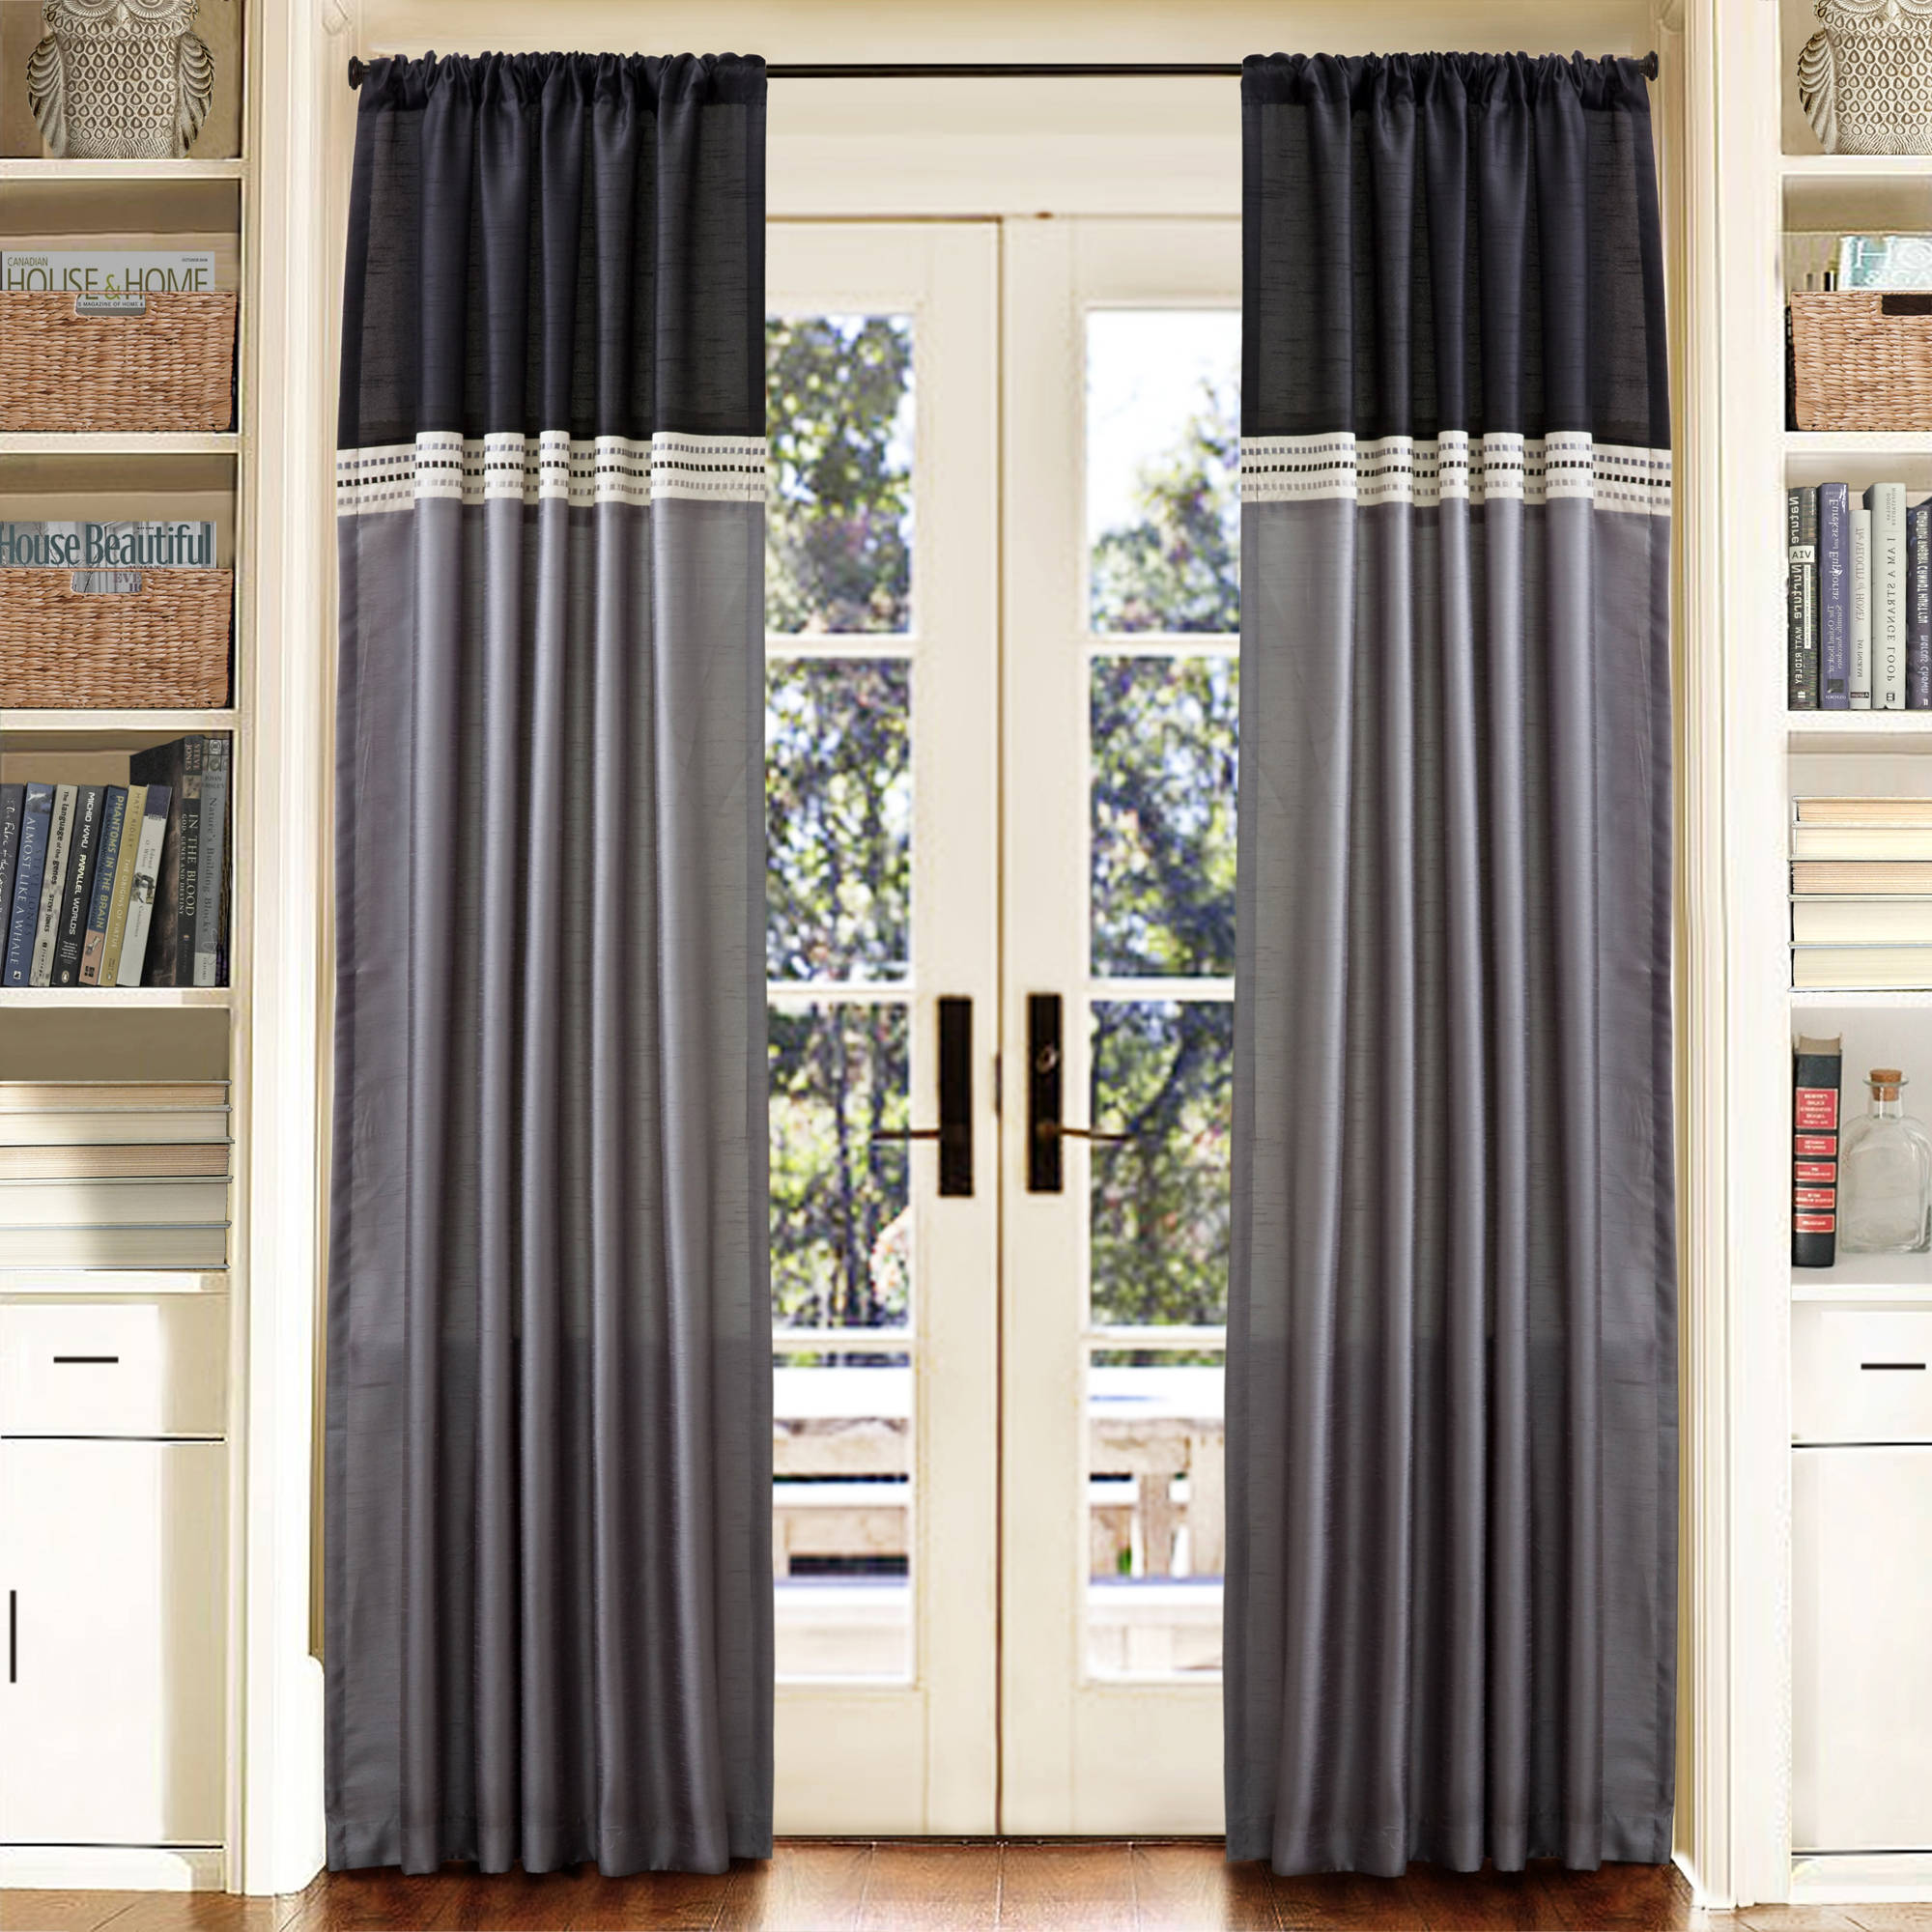 Terra Window Curtains, Set of 2